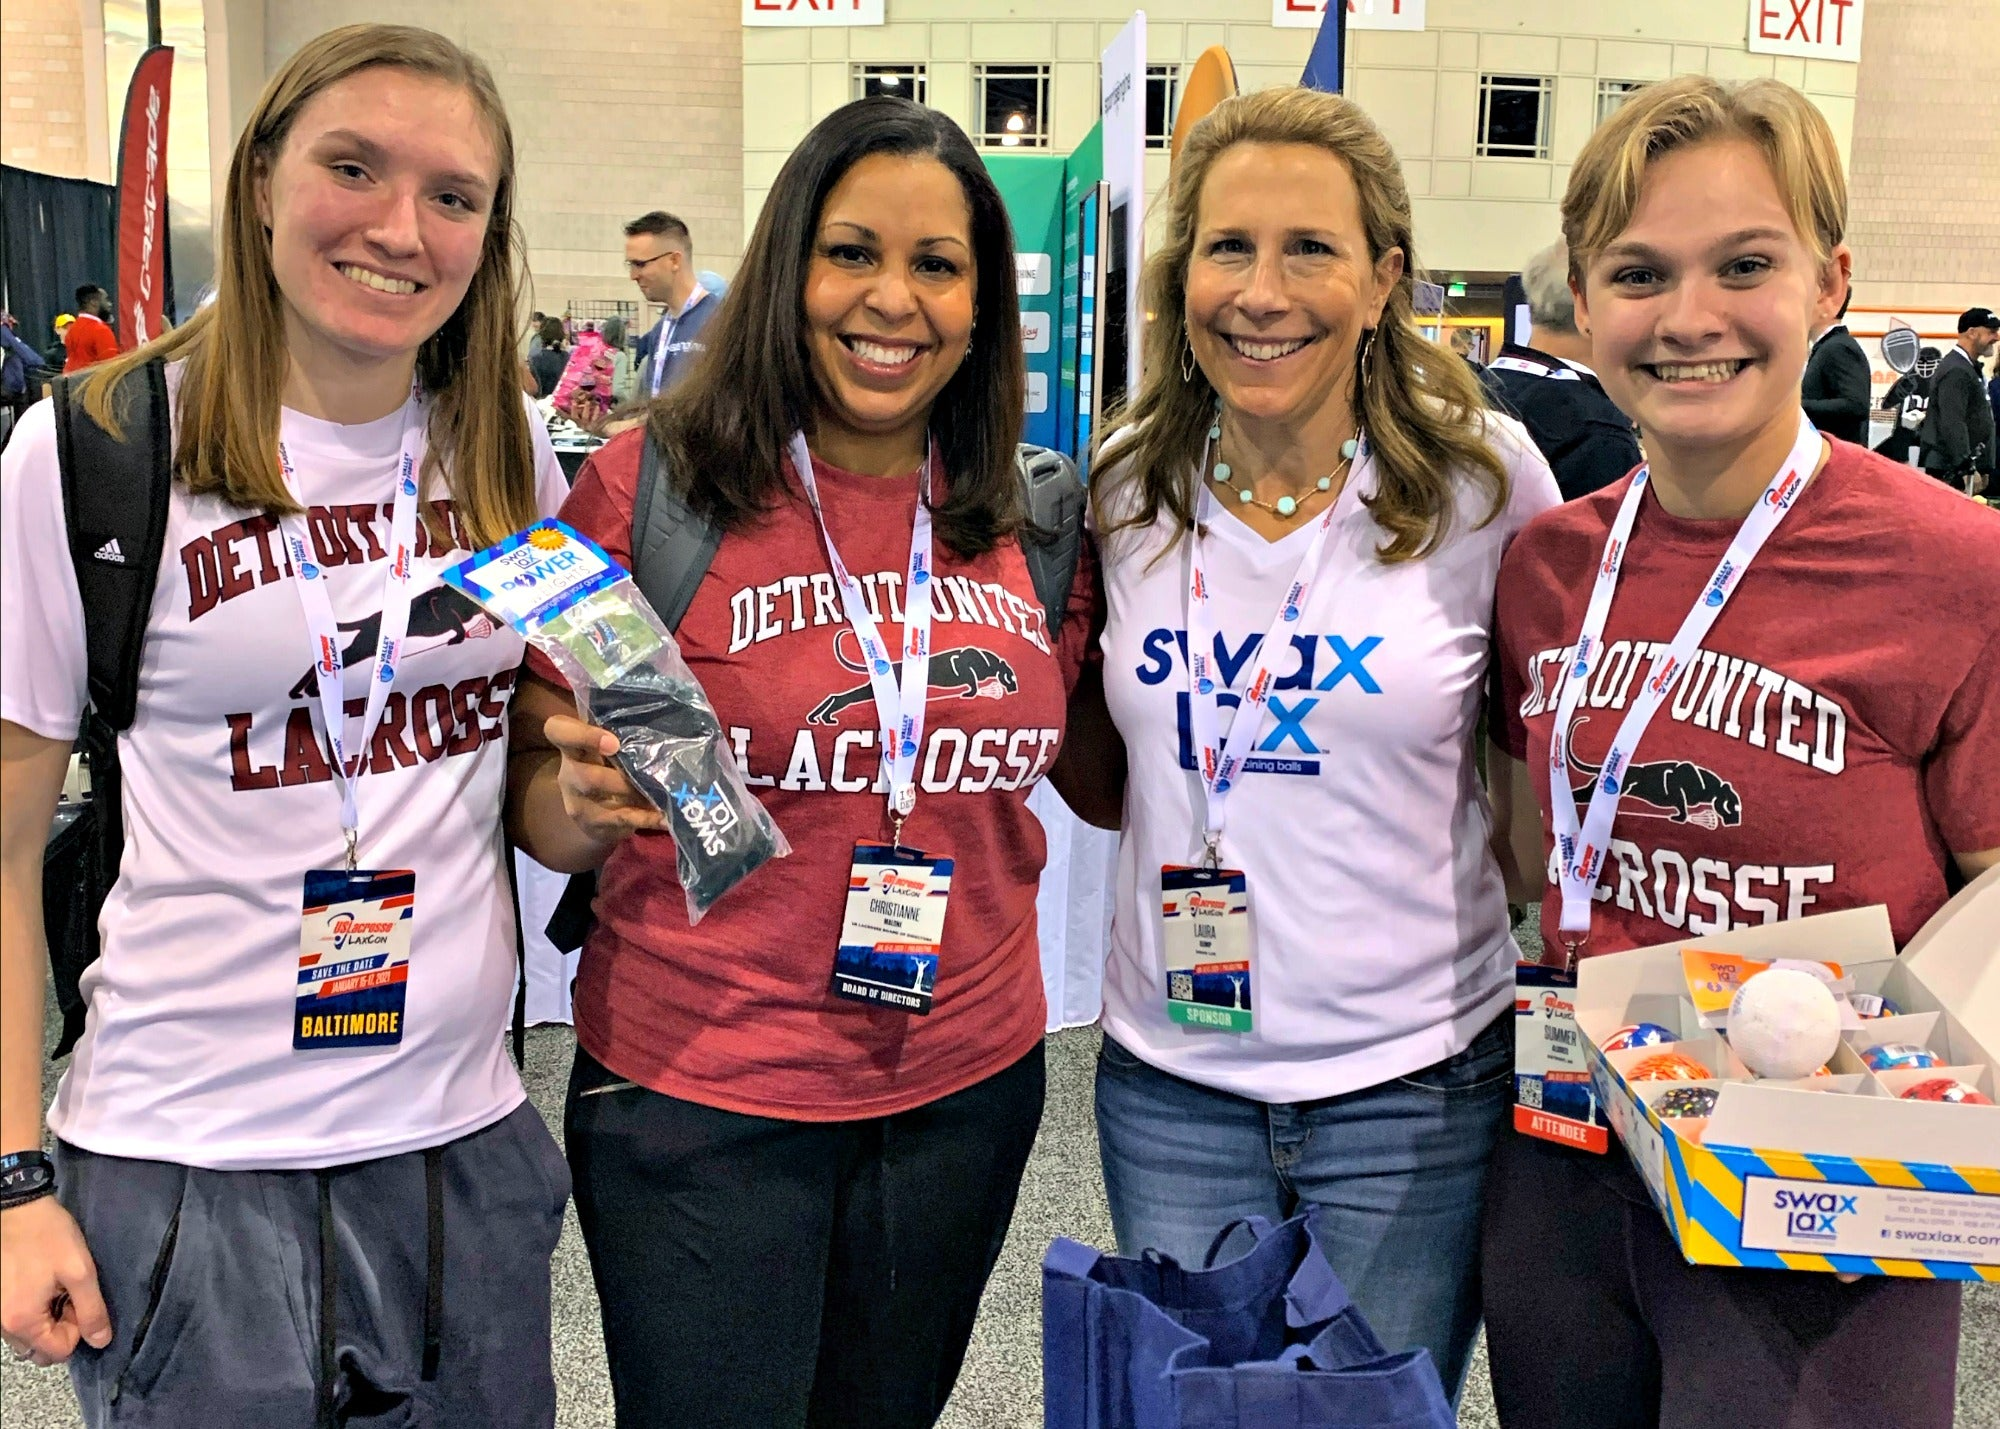 Christianne - winner of our Saturday 2020 LaxCon Swax Lax giveaway bundle